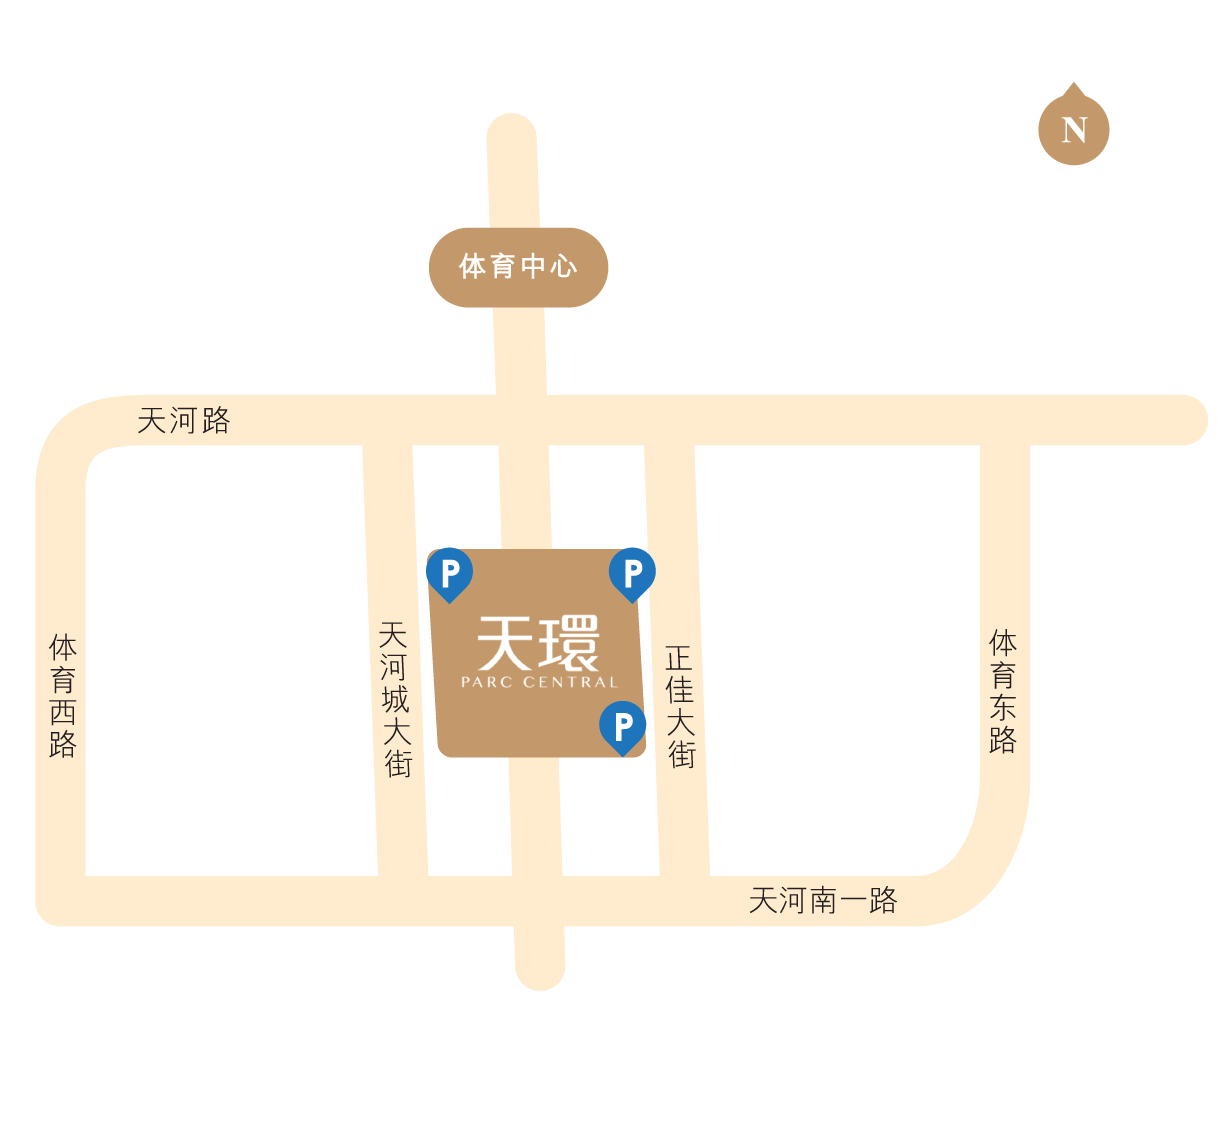 Image of Parking